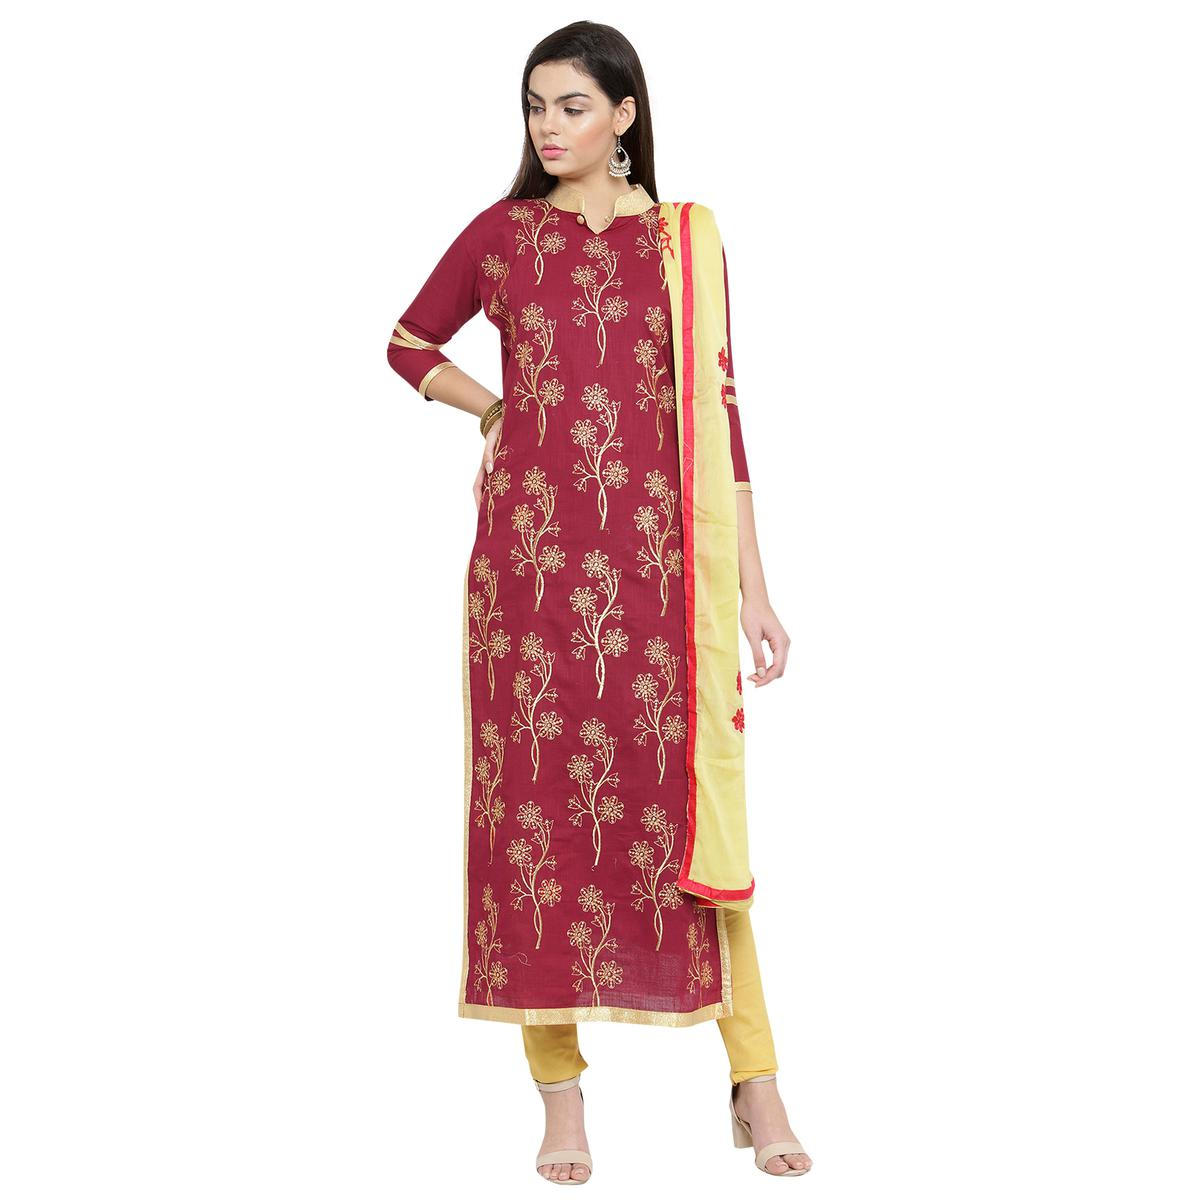 Majestic Red Colored Casual Embroidered Cotton Dress Material